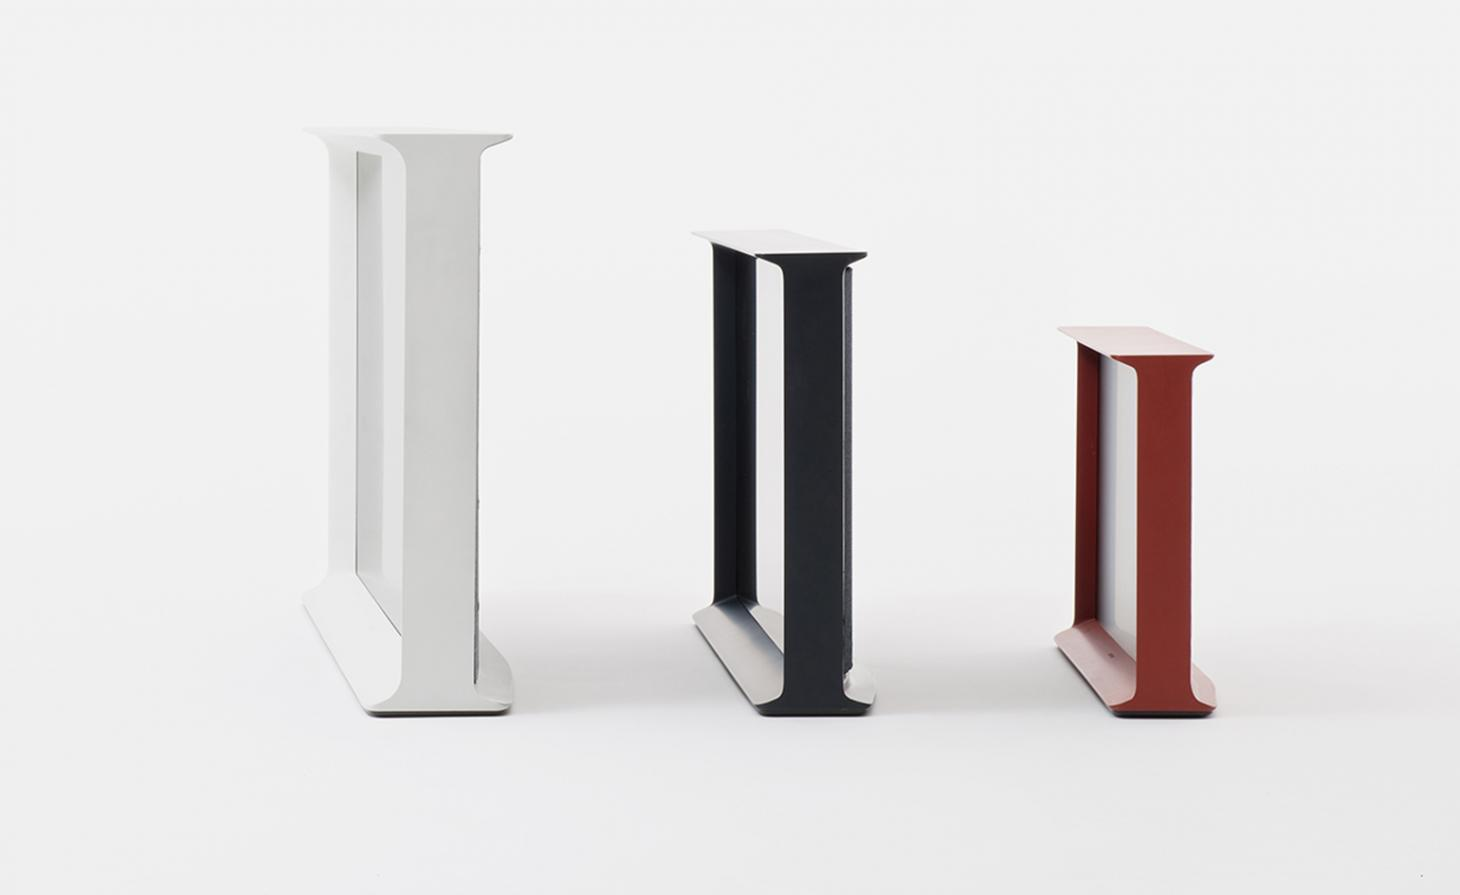 Serif: the Bouroullec brothers team up with Samsung to reinvent TV